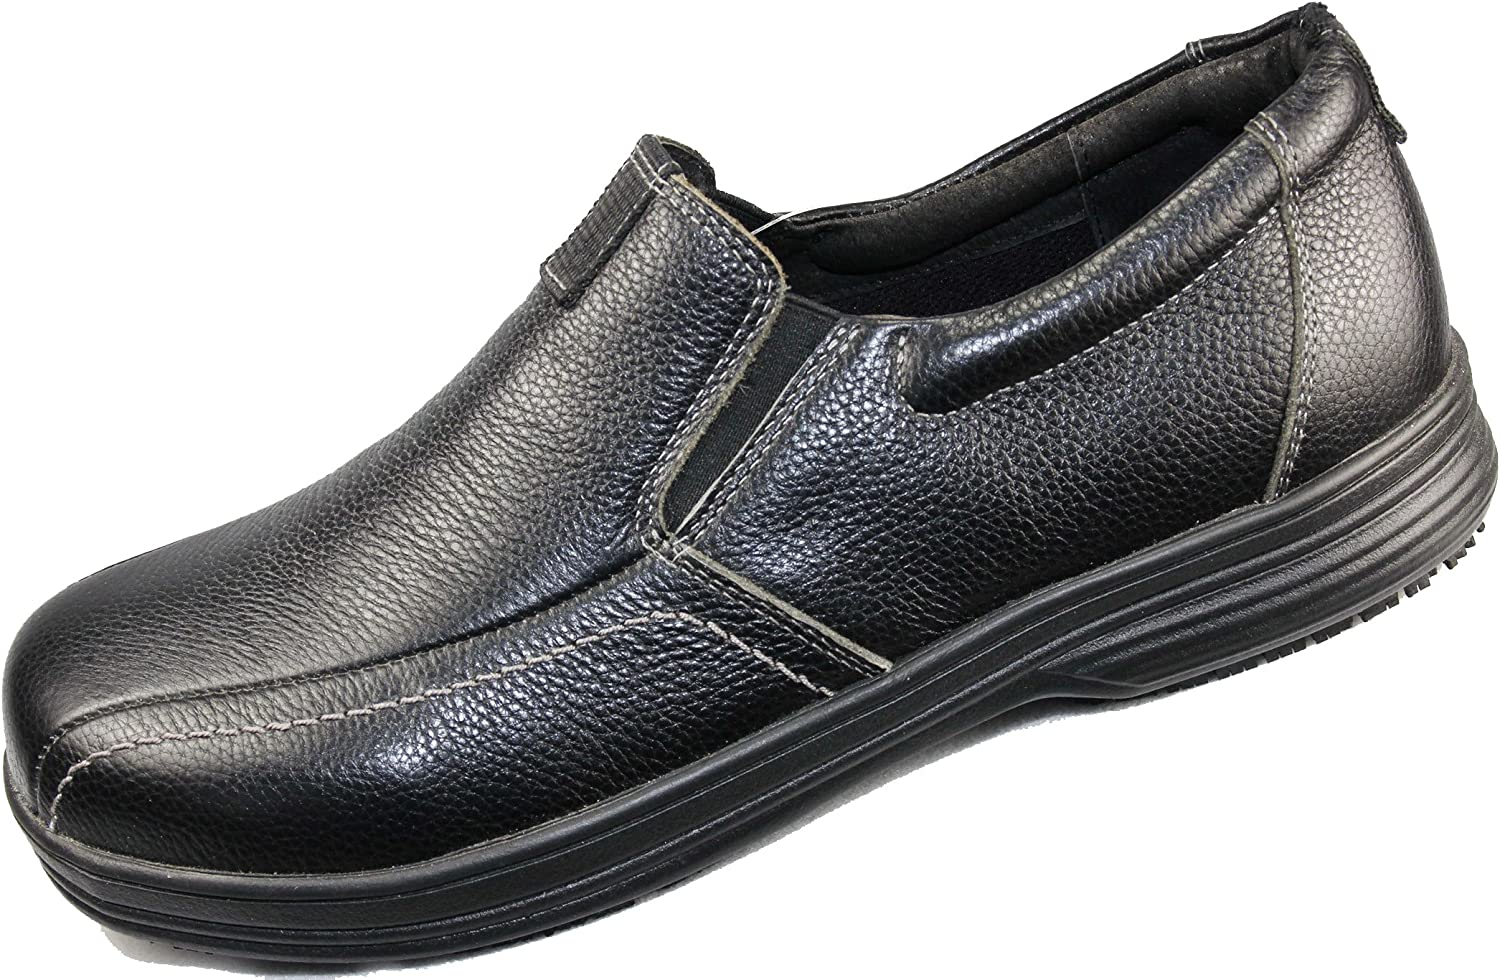 Laforst Stan 8205 Mens Work Slip Resistant Slip On Loafers Black 10